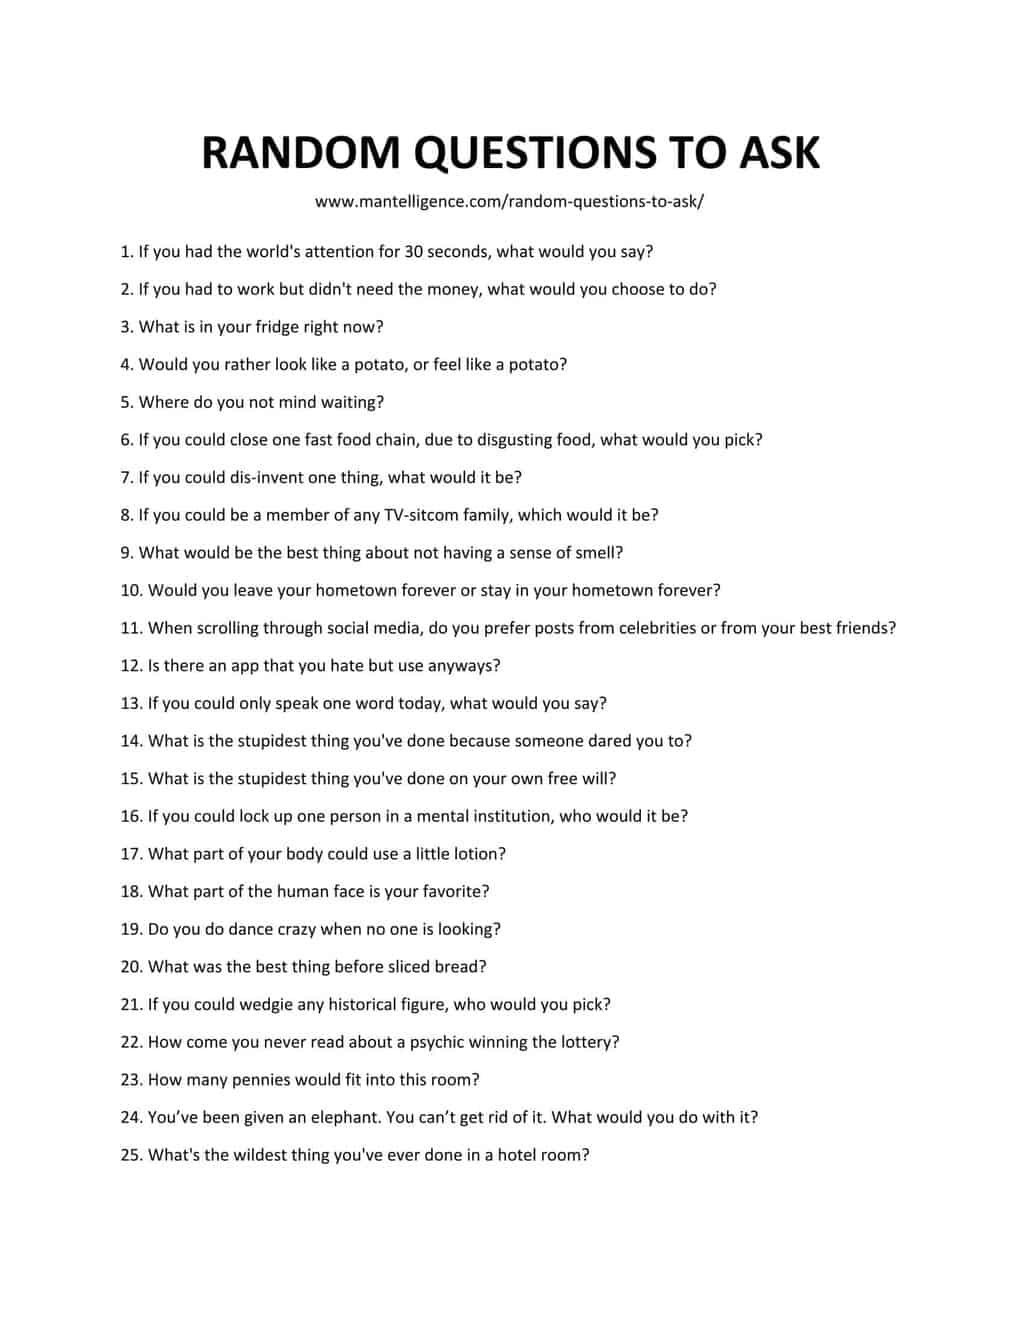 99 Random Questions to Ask - Fun and unexpected questions